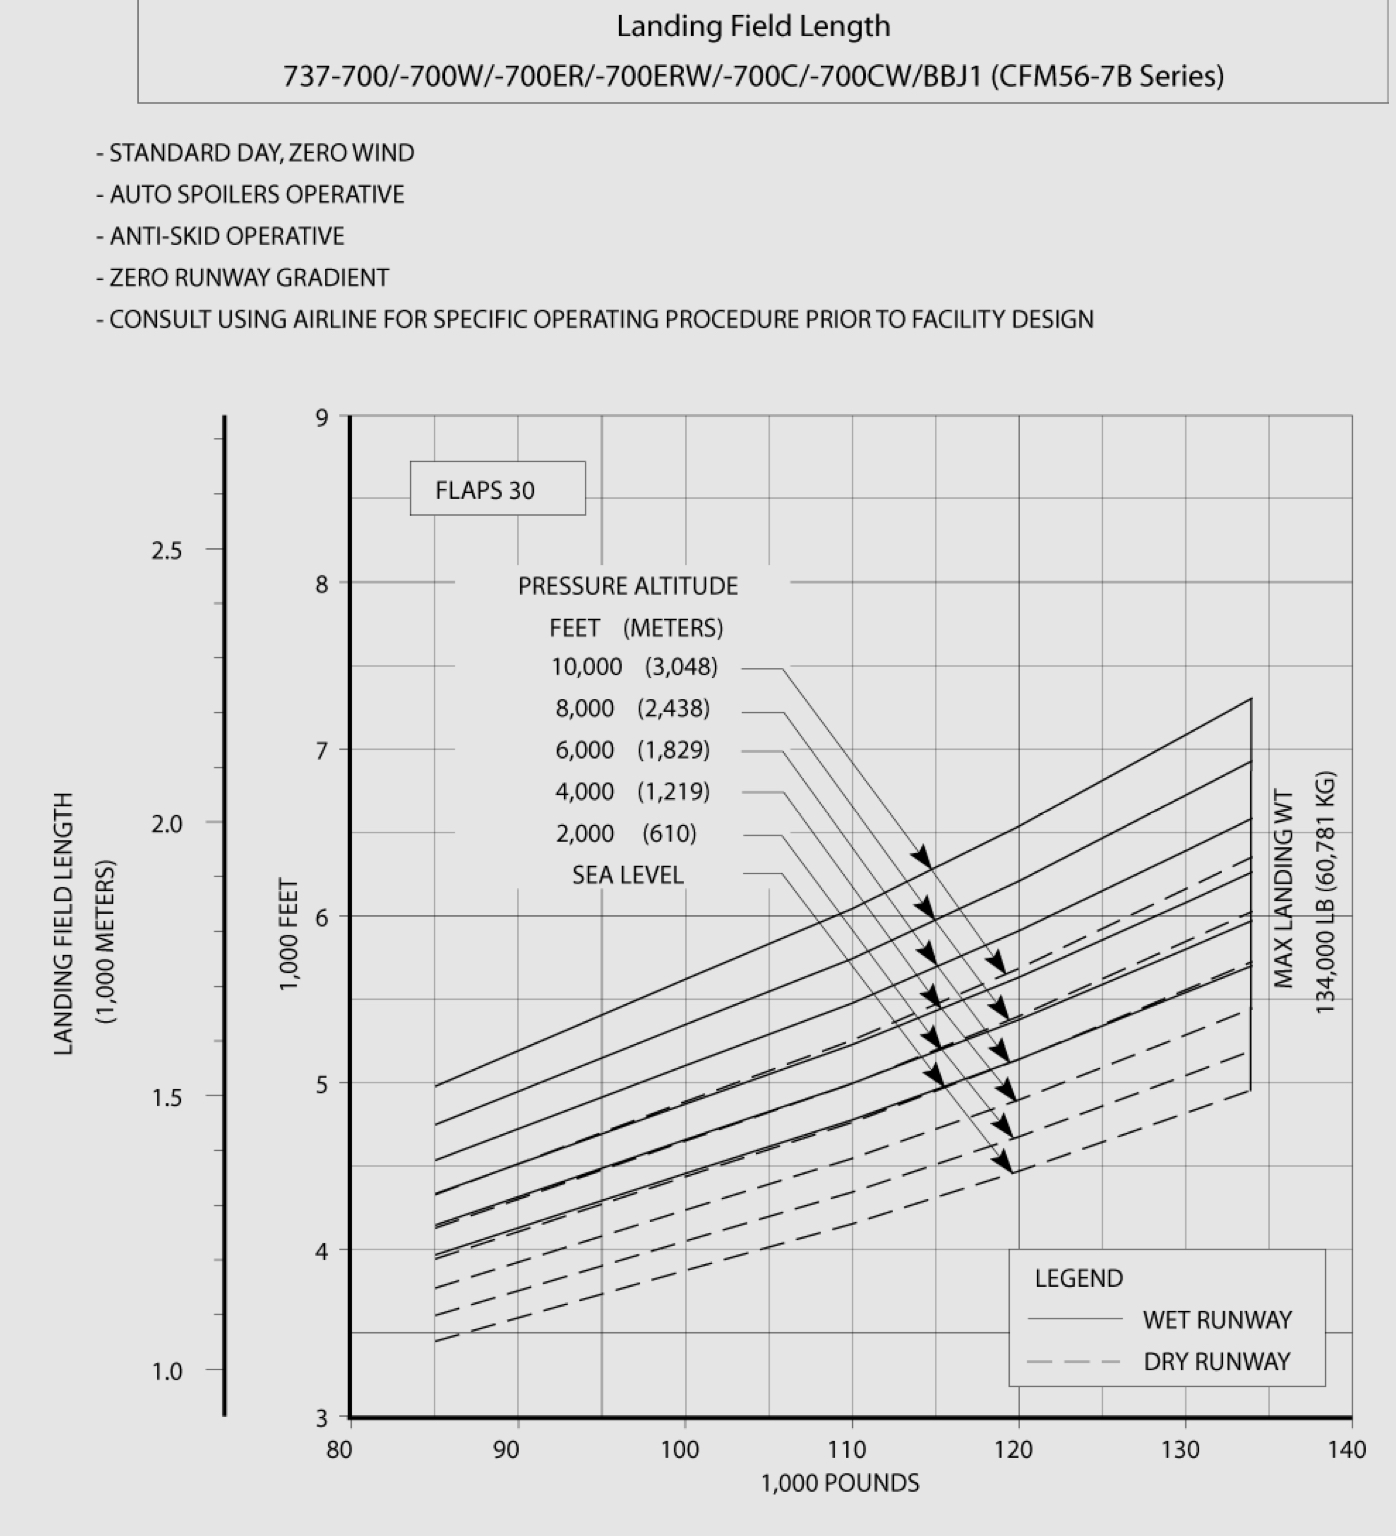 the wet runway allowable landing weight provides 92 margin for stopping distance compared to a dry perfect landing the wet runway allowable landing  [ 1396 x 1536 Pixel ]